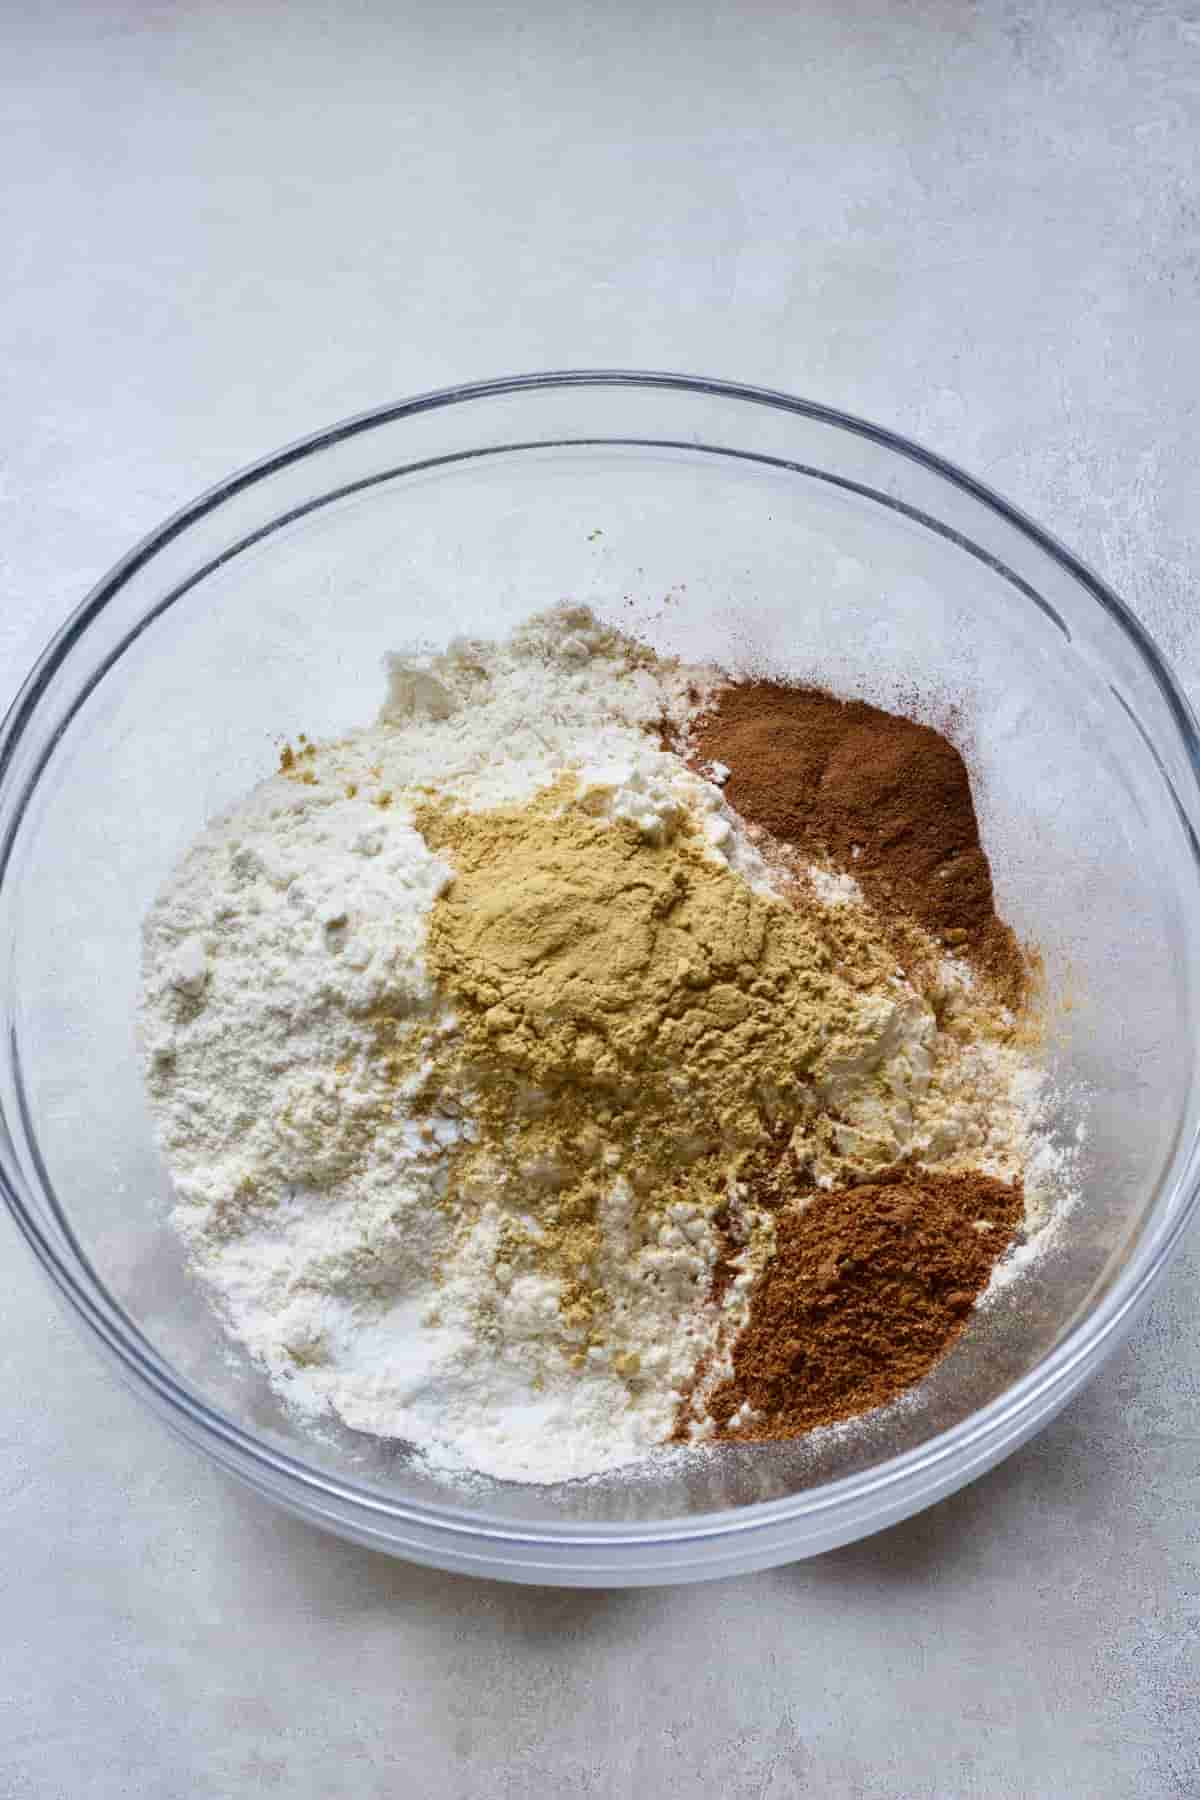 Flour and spices in a glass bowl.